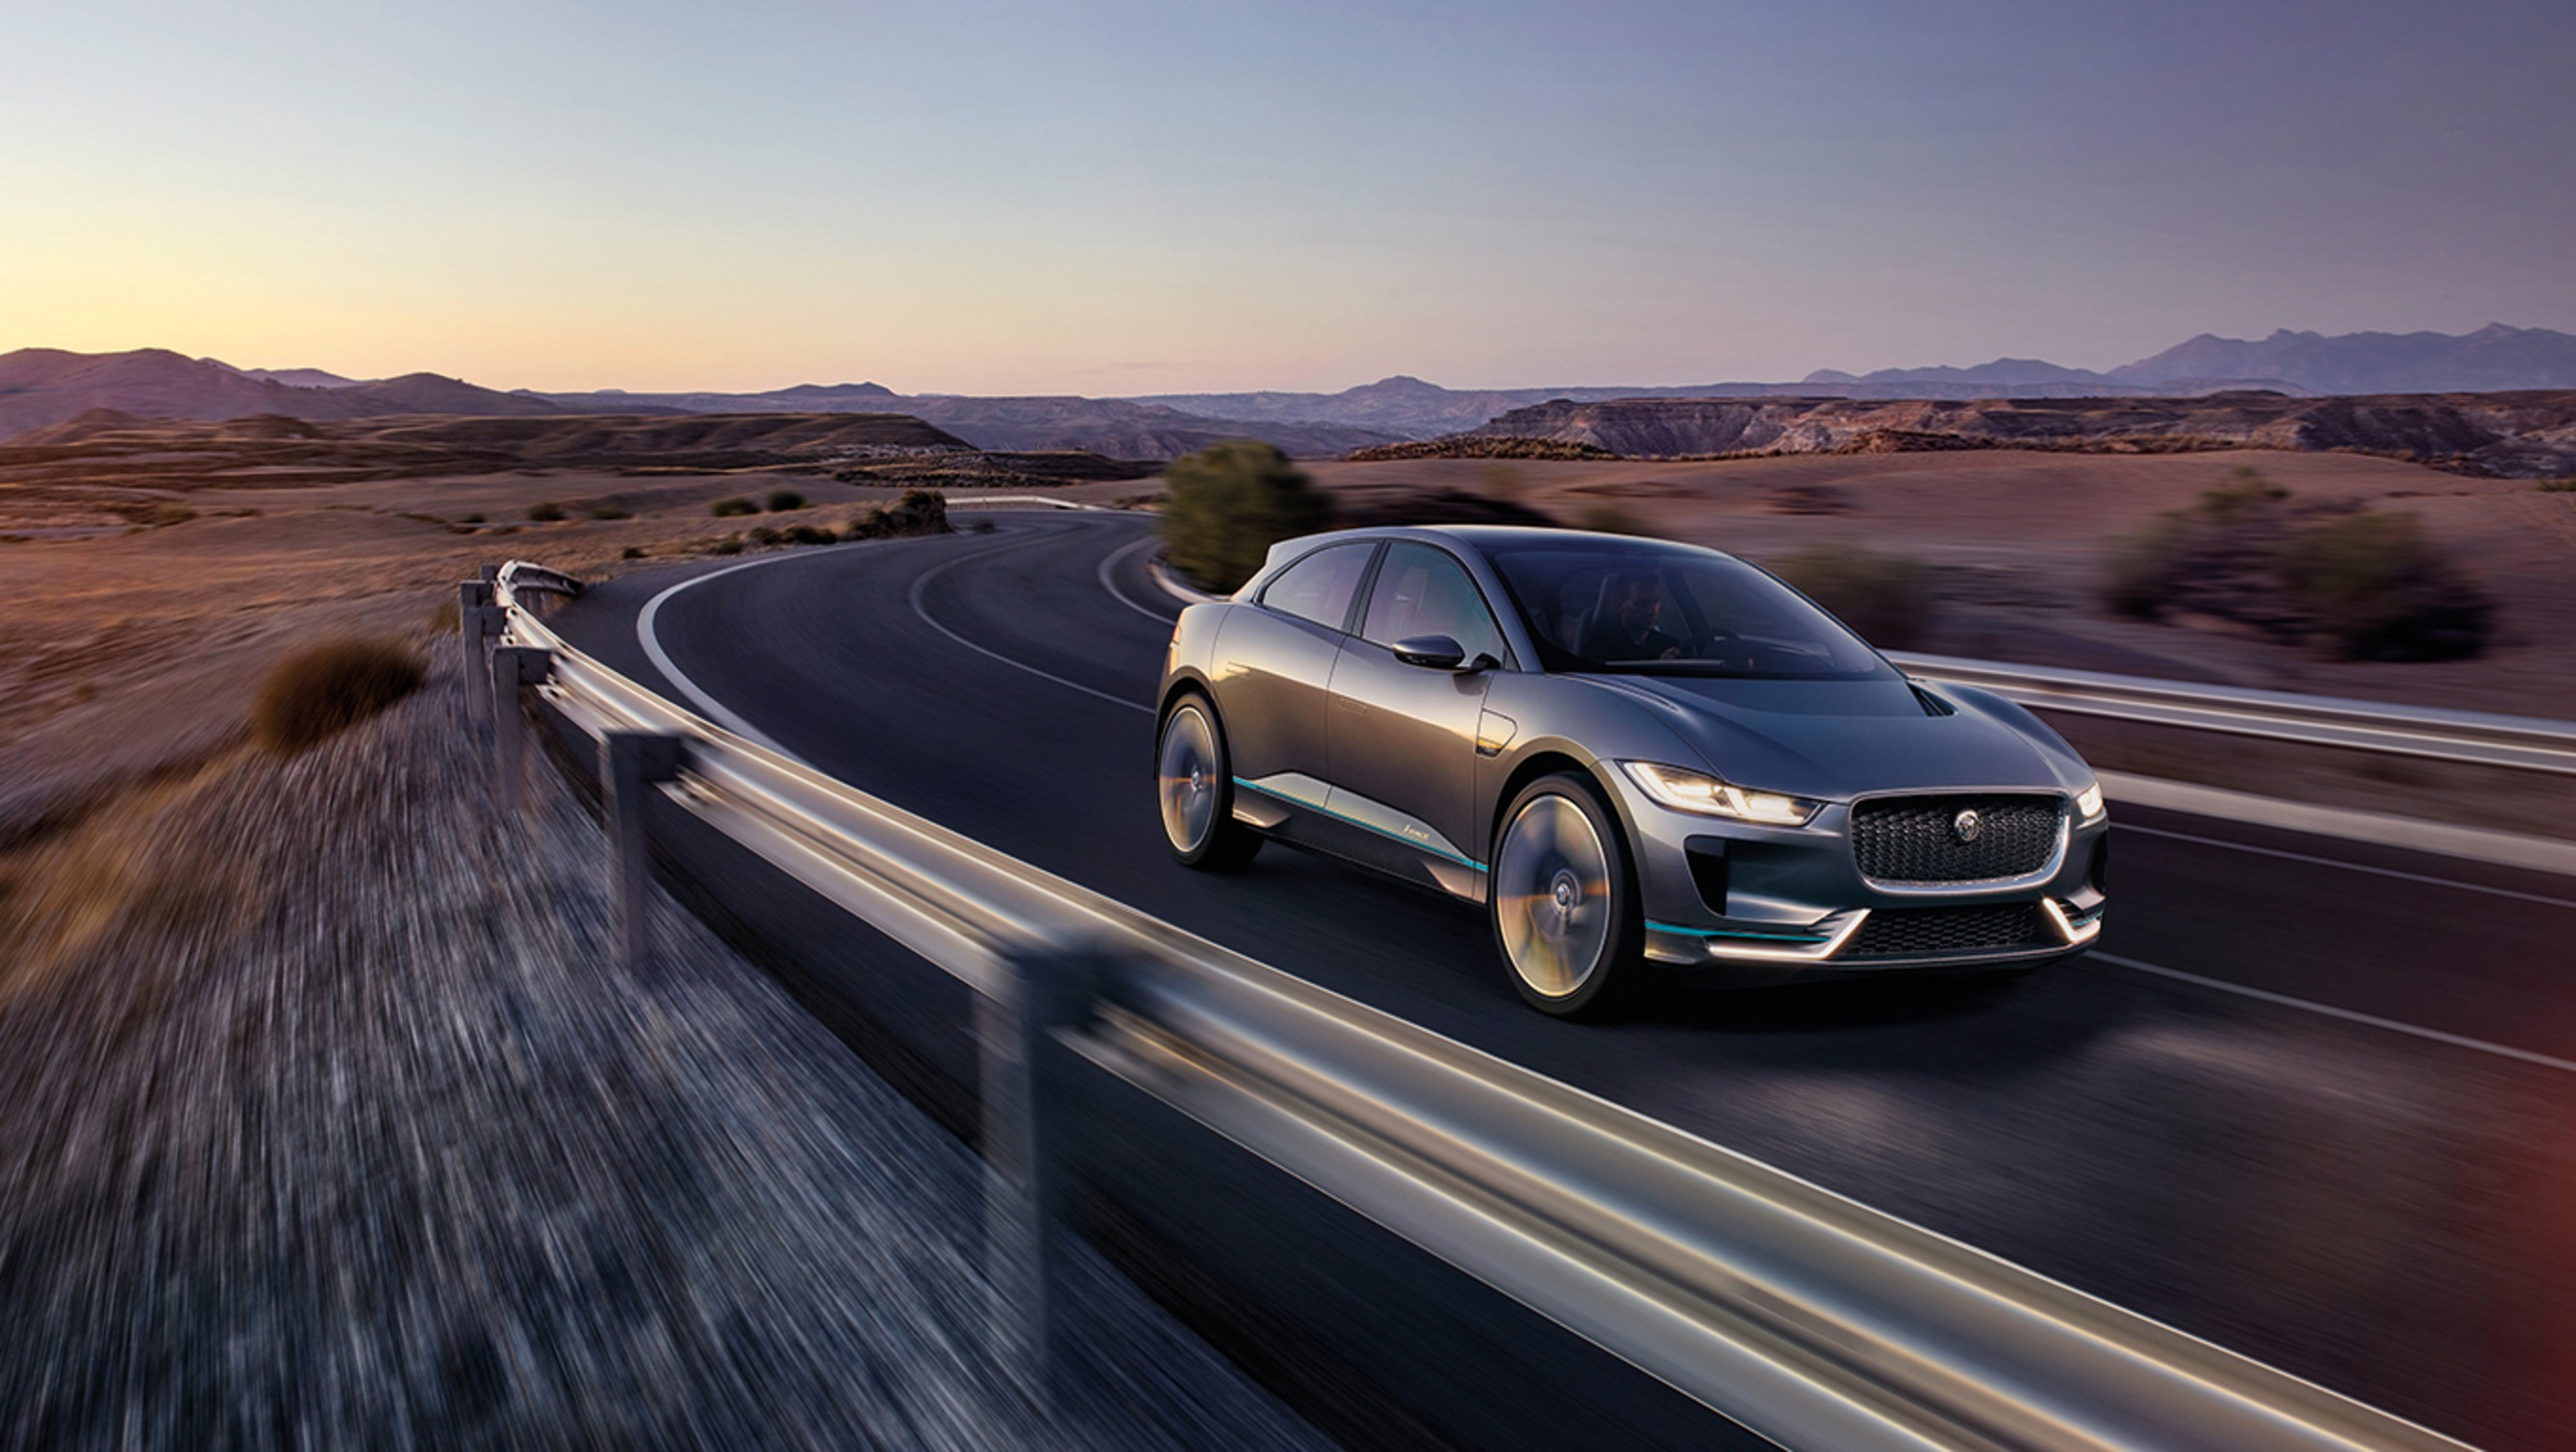 Jaguar I-PACE All Electric - See it at Grange Jaguar now